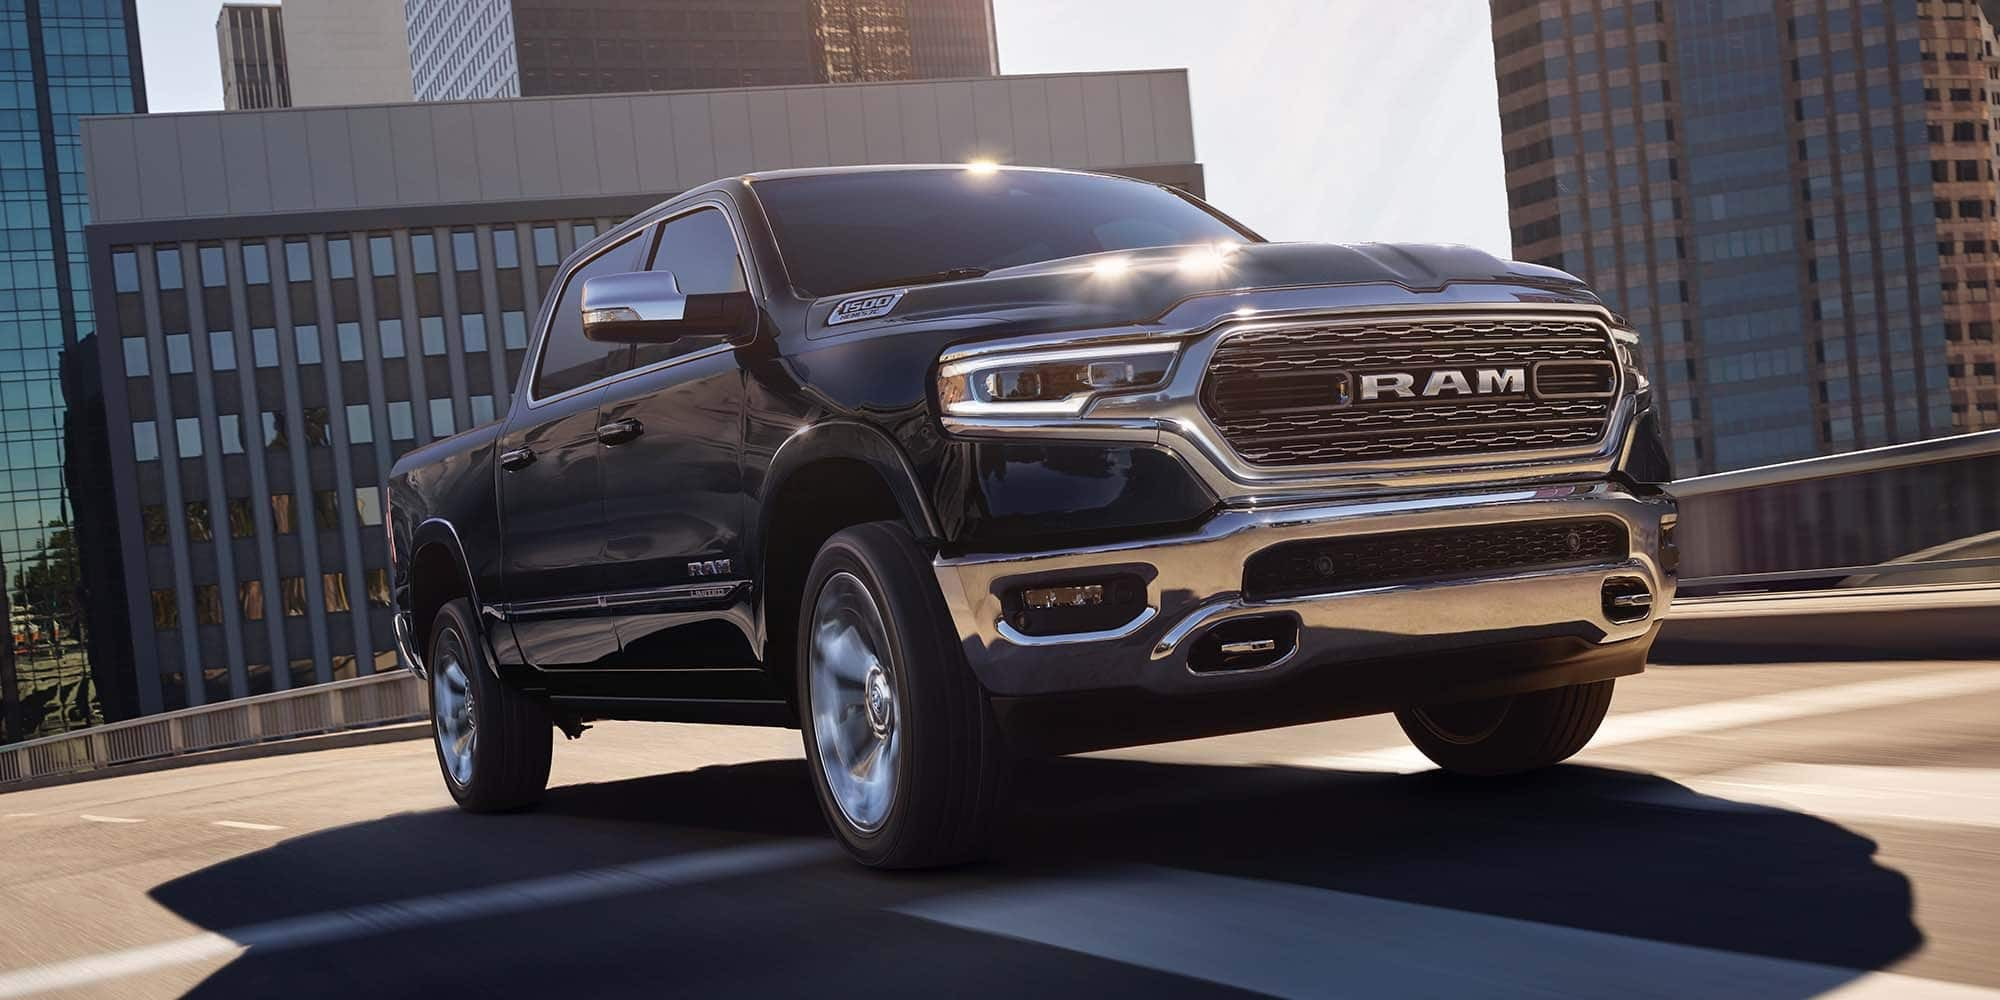 new 2019 ram 1500 for sale near ocean city nj middle township nj lease or buy a new 2019. Black Bedroom Furniture Sets. Home Design Ideas